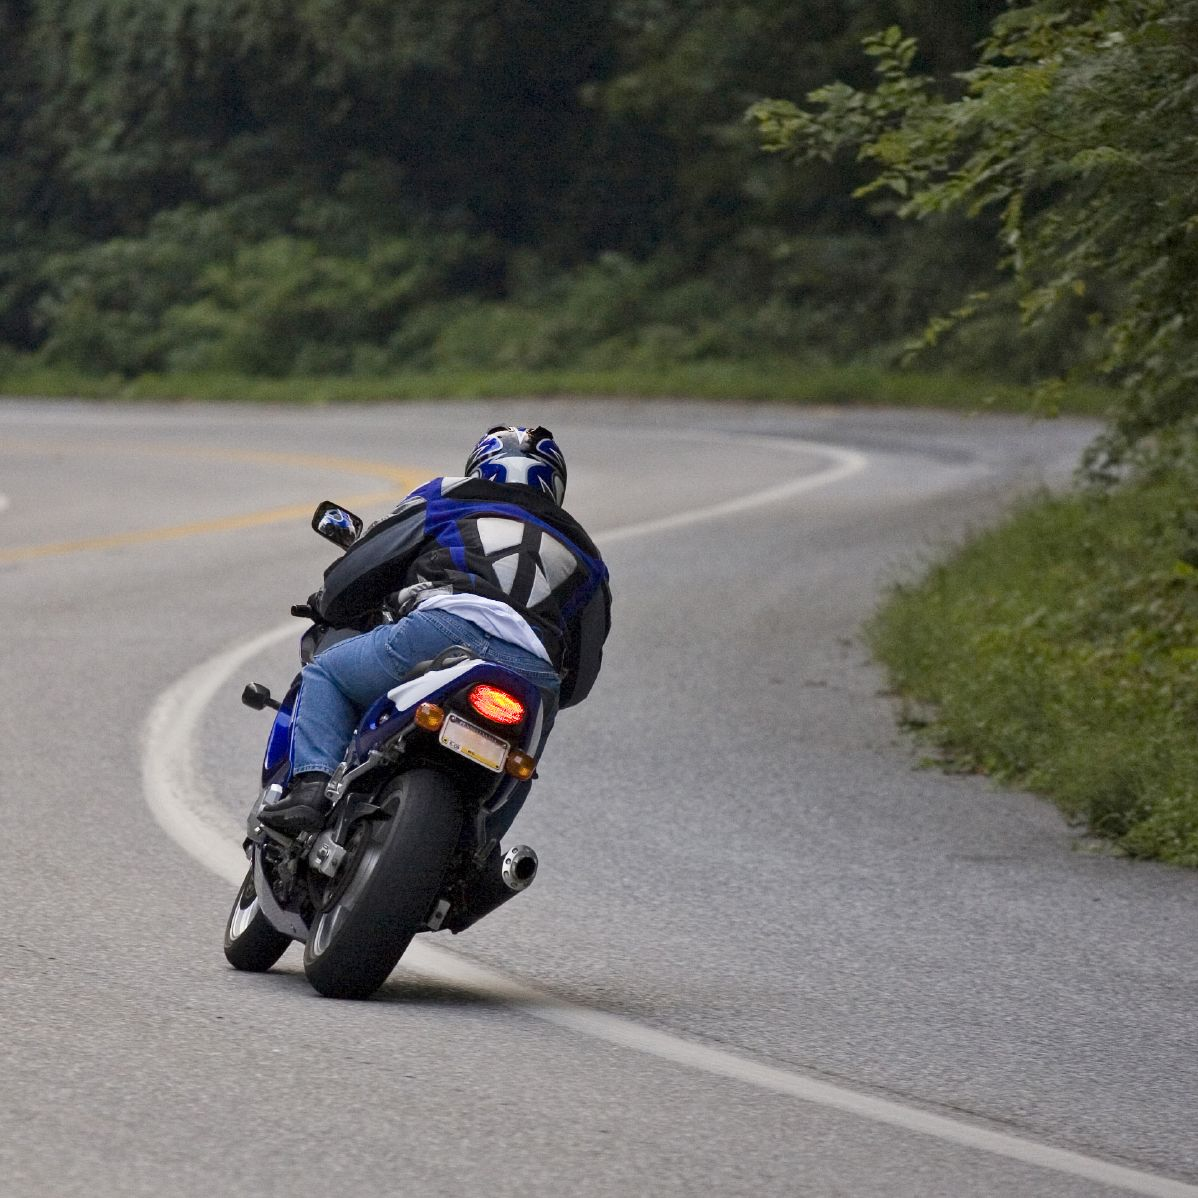 A motorcyclist on a winding road